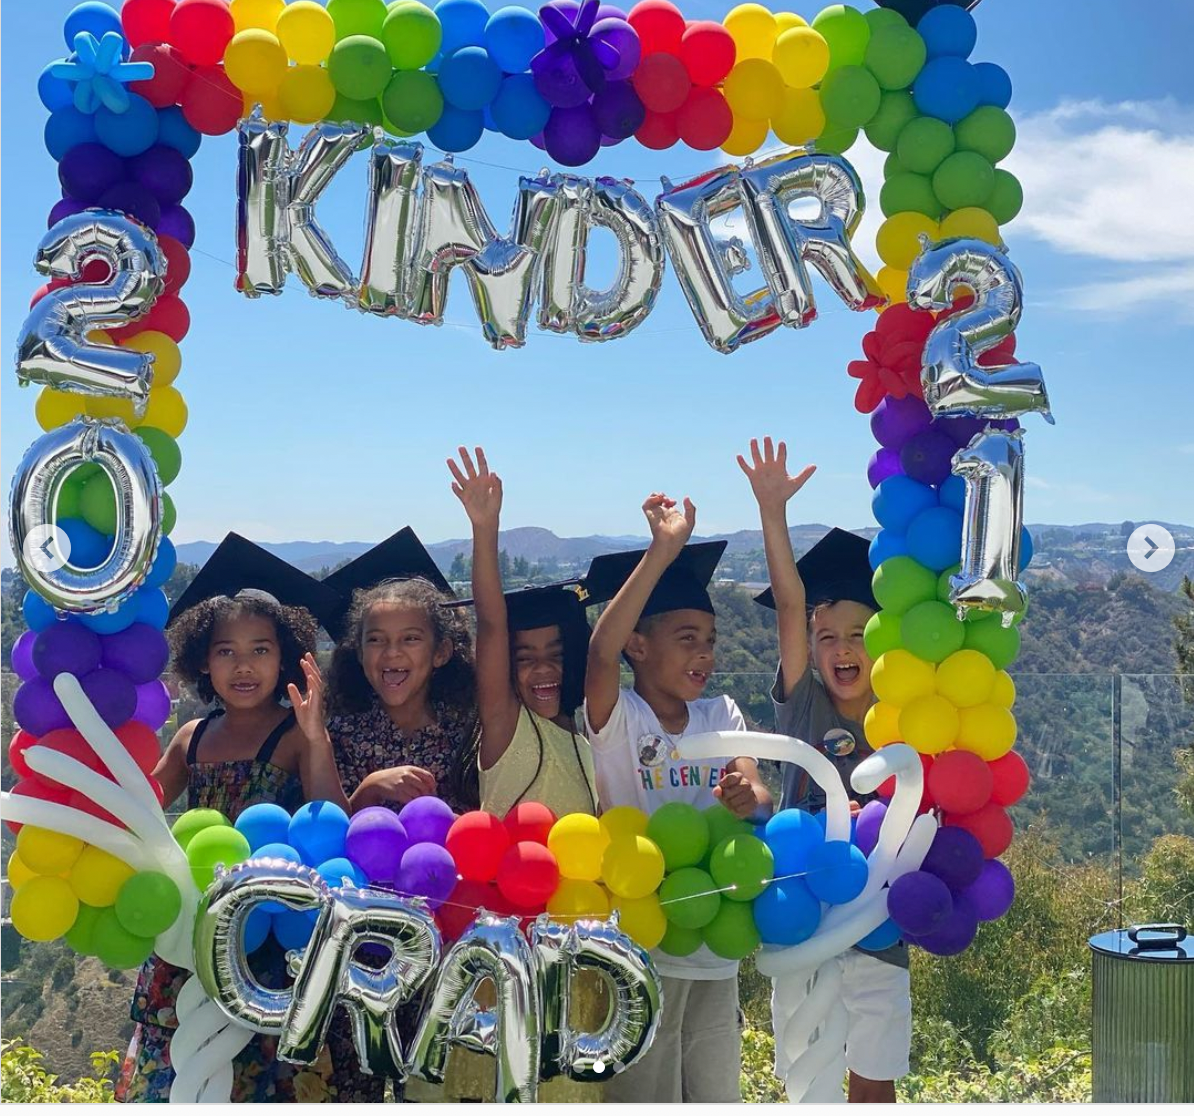 Kelly Rowland's son Titan poses with other graduands at his Kindergarten graduation ceremony. | Photo: Instagram/@Kellyrowland